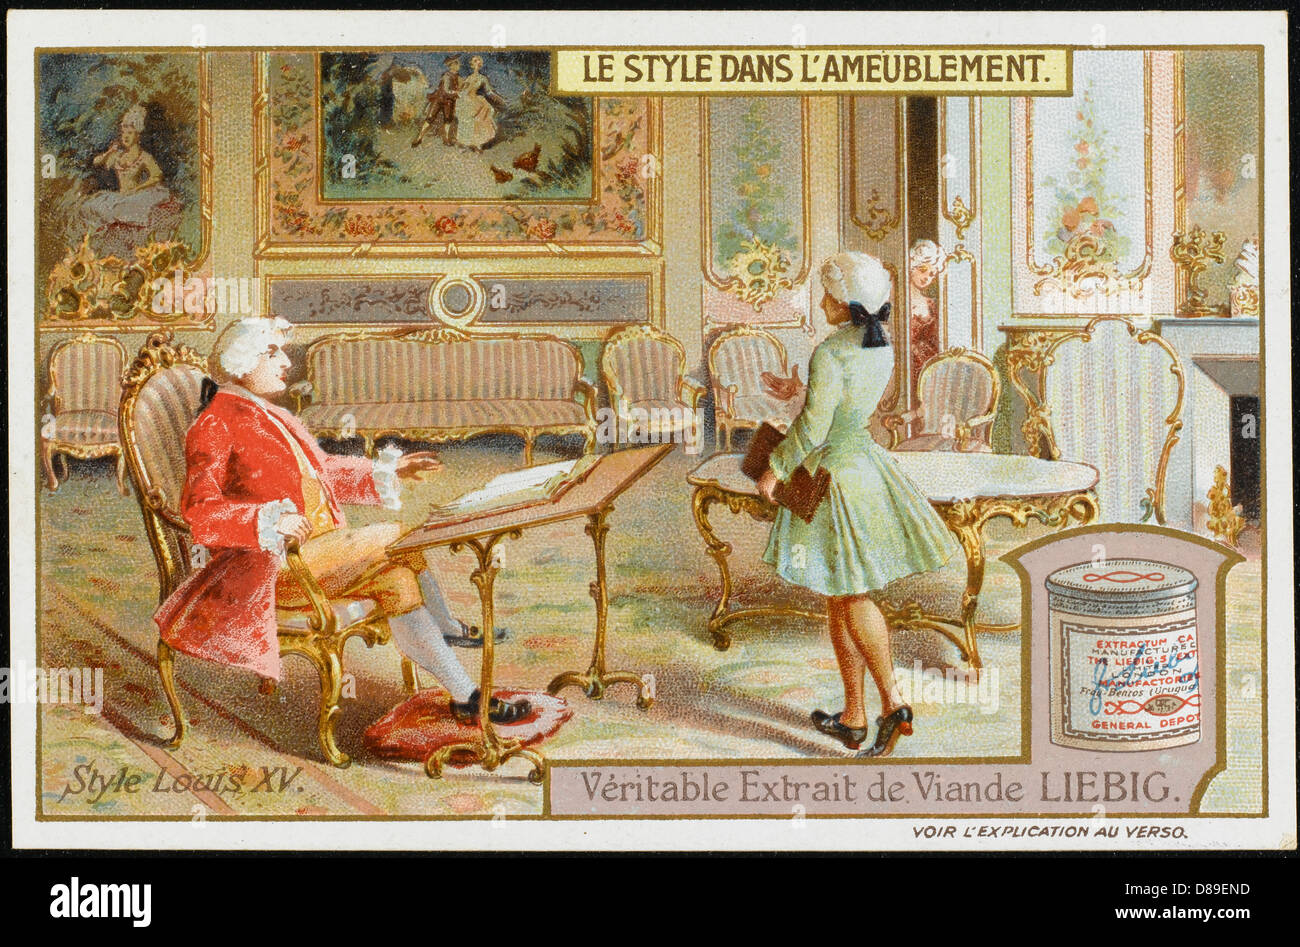 chambre de style louis xv banque d'images, photo stock: 56757497 - alamy